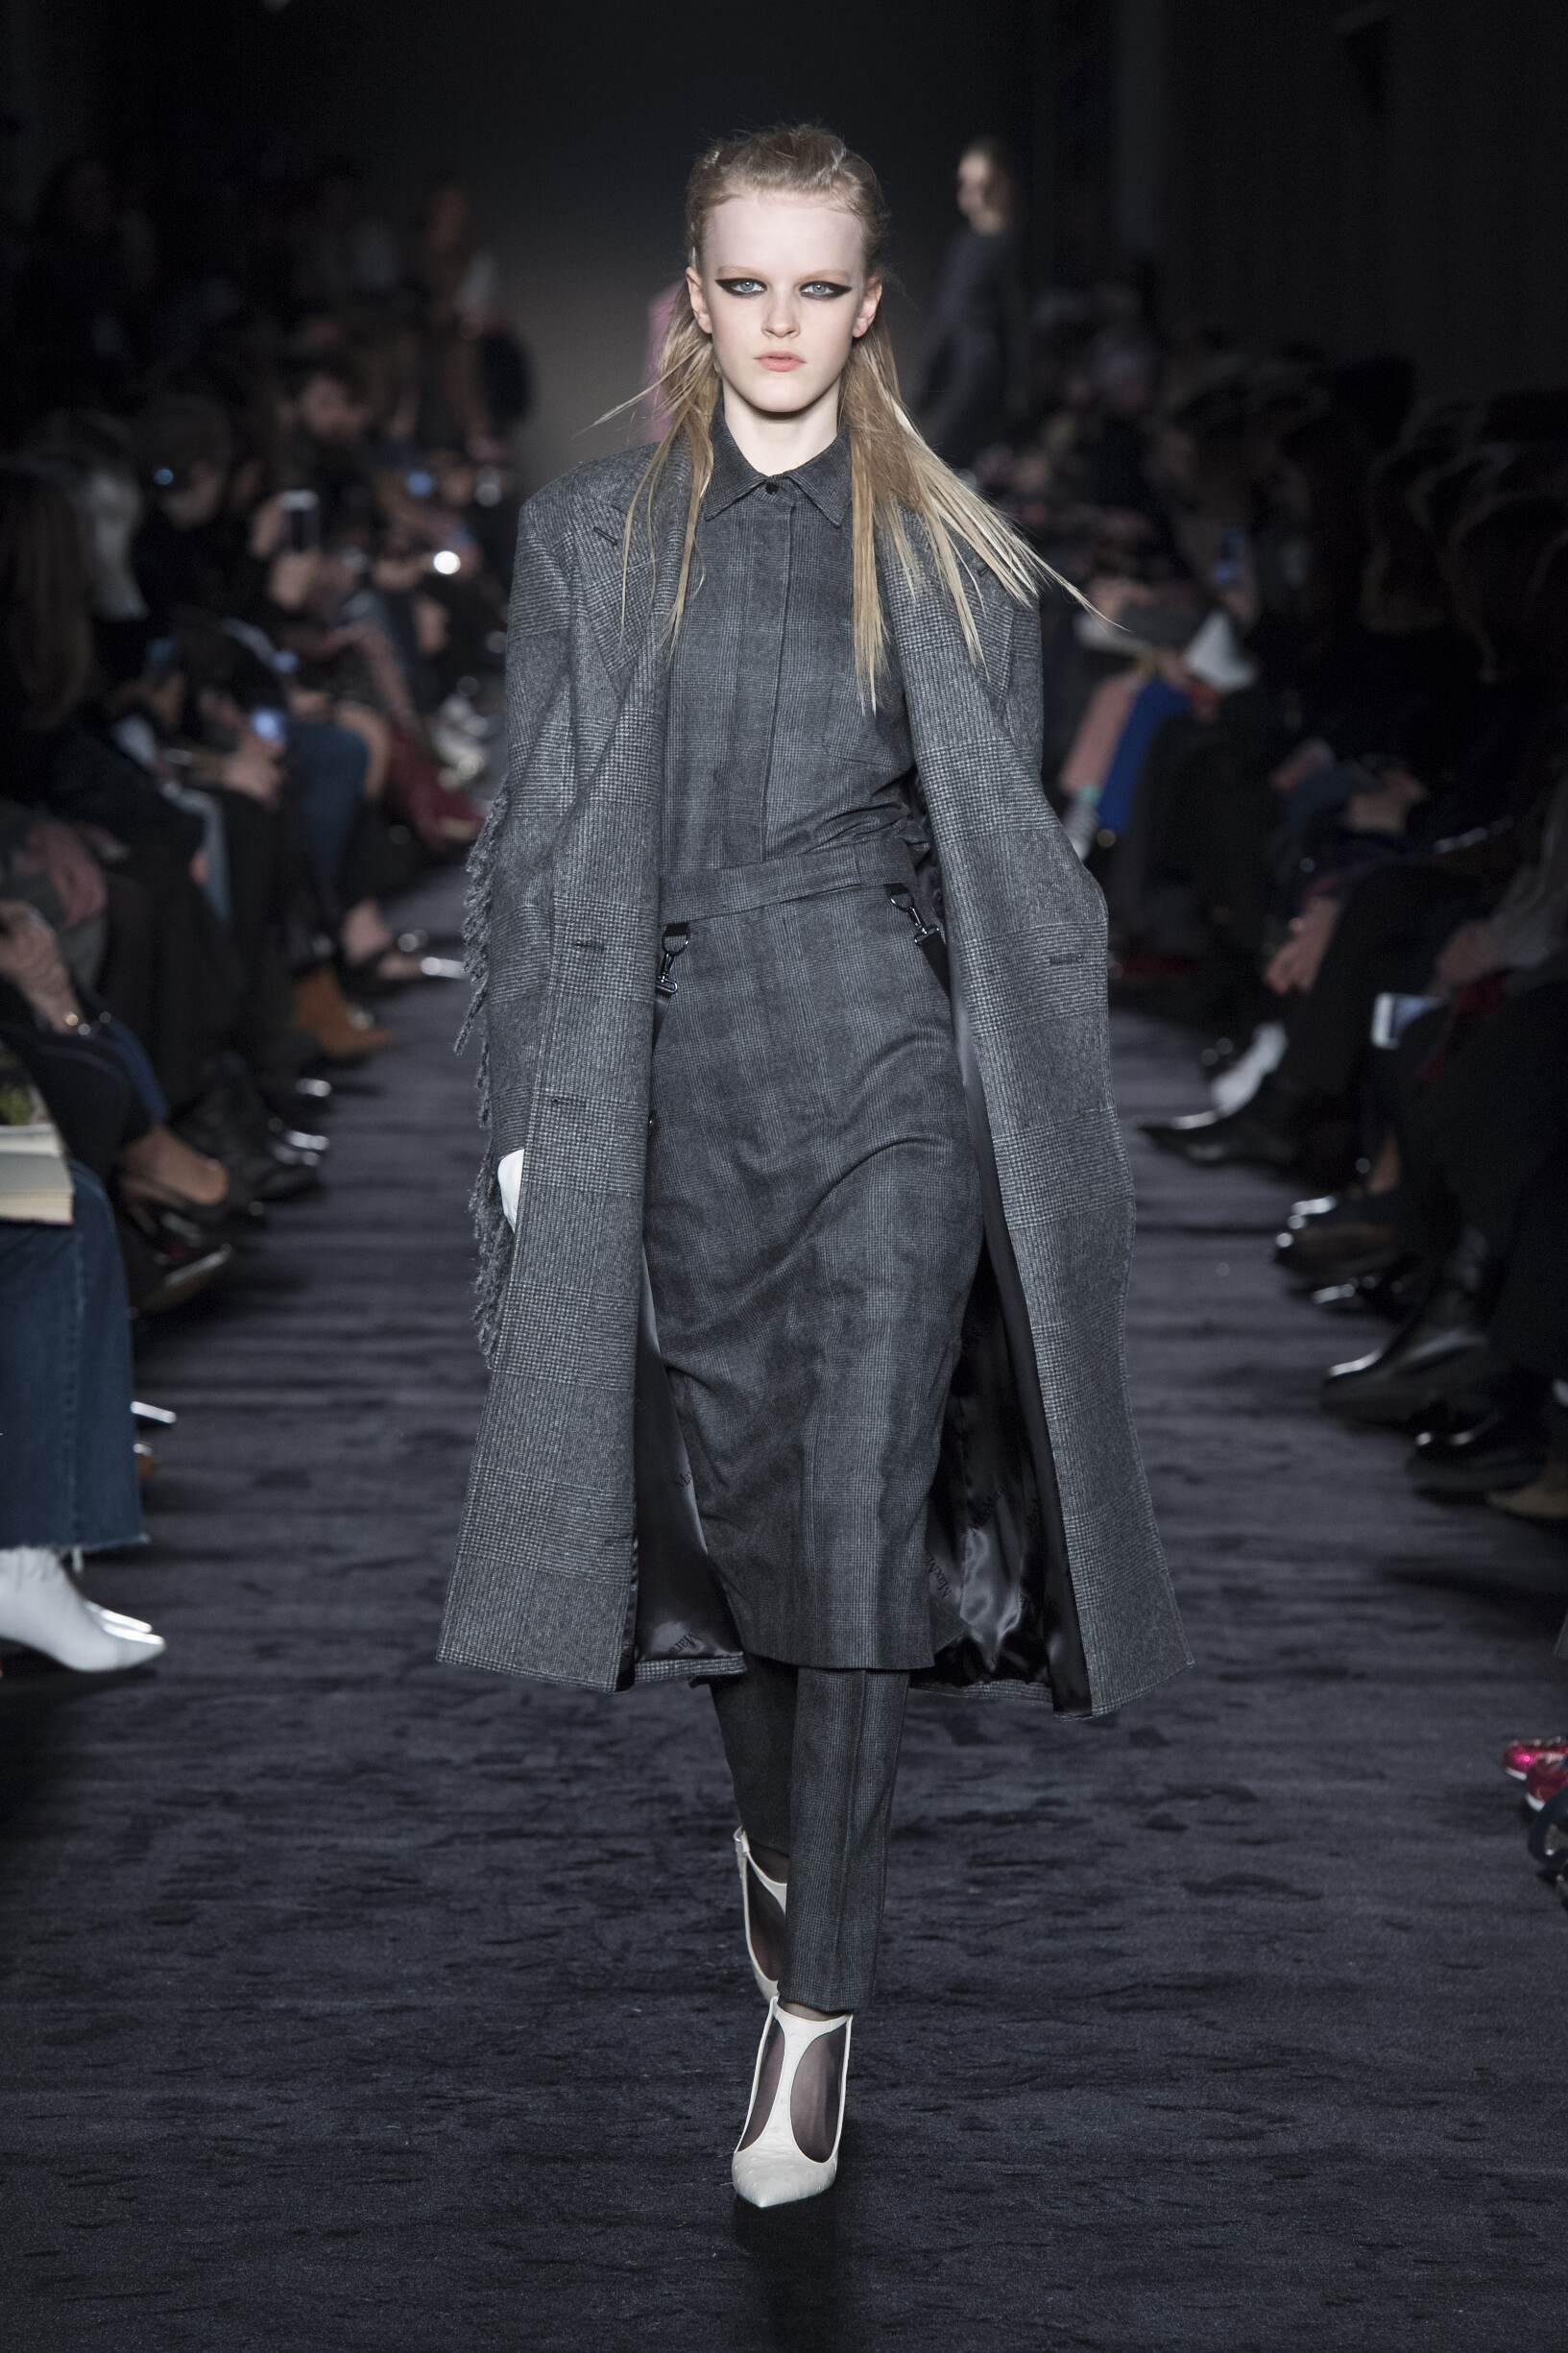 Catwalk Max Mara Woman Fashion Show Winter 2018